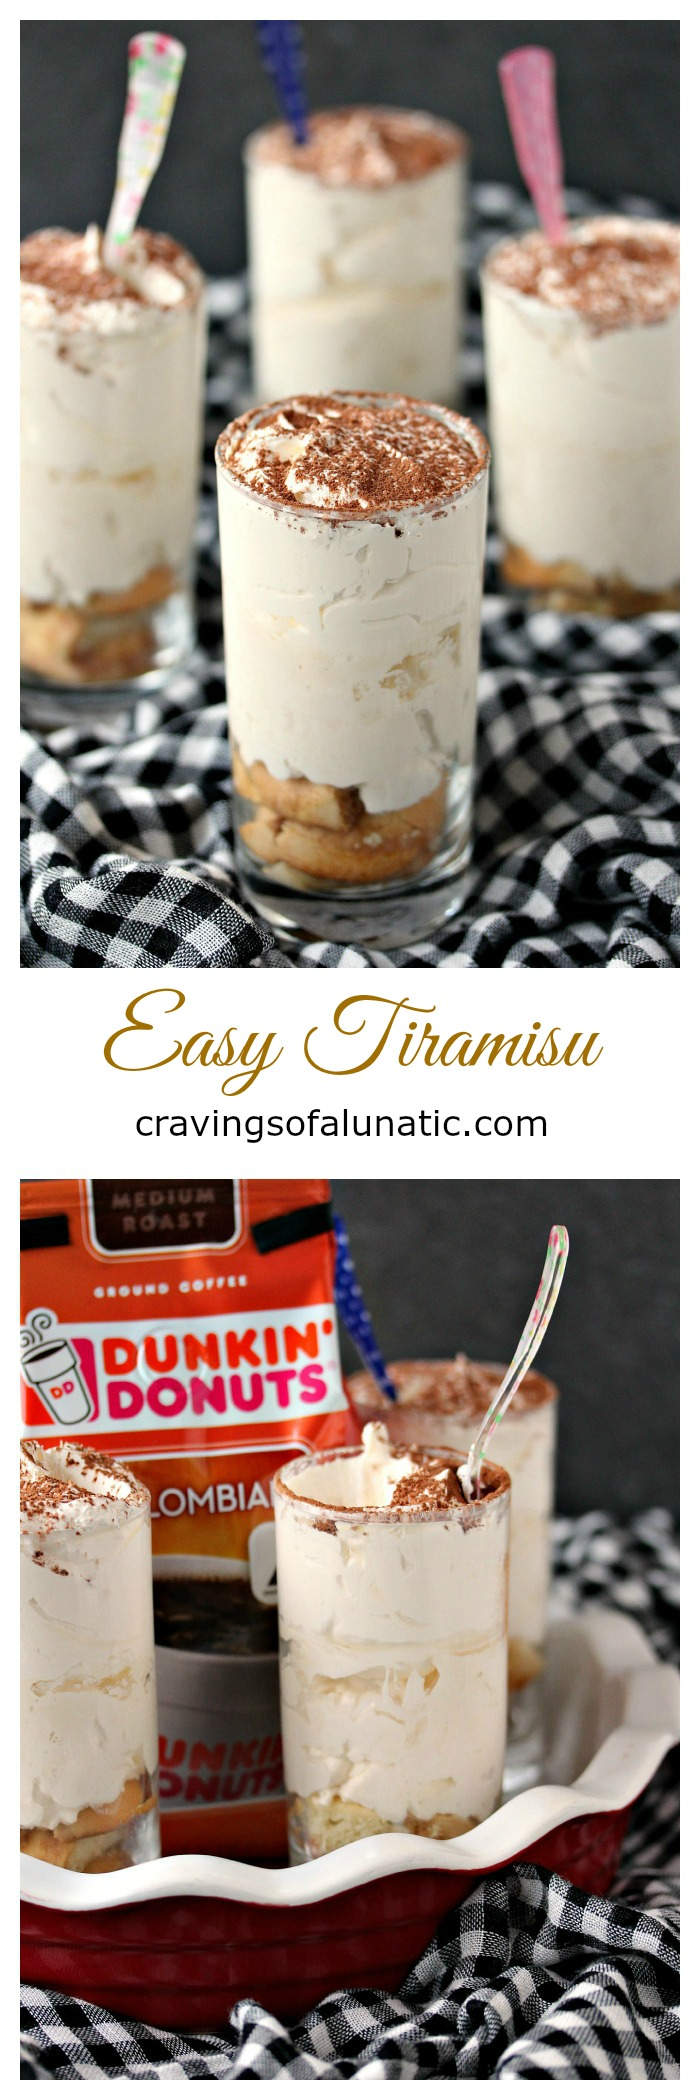 Easy Tiramisu from cravingsofalunatic.com- Nothing beats a fabulous dessert after a great meal. This Easy Tiramisu is full of flavour and very simple and quick to make. (@CravingsLunatic)